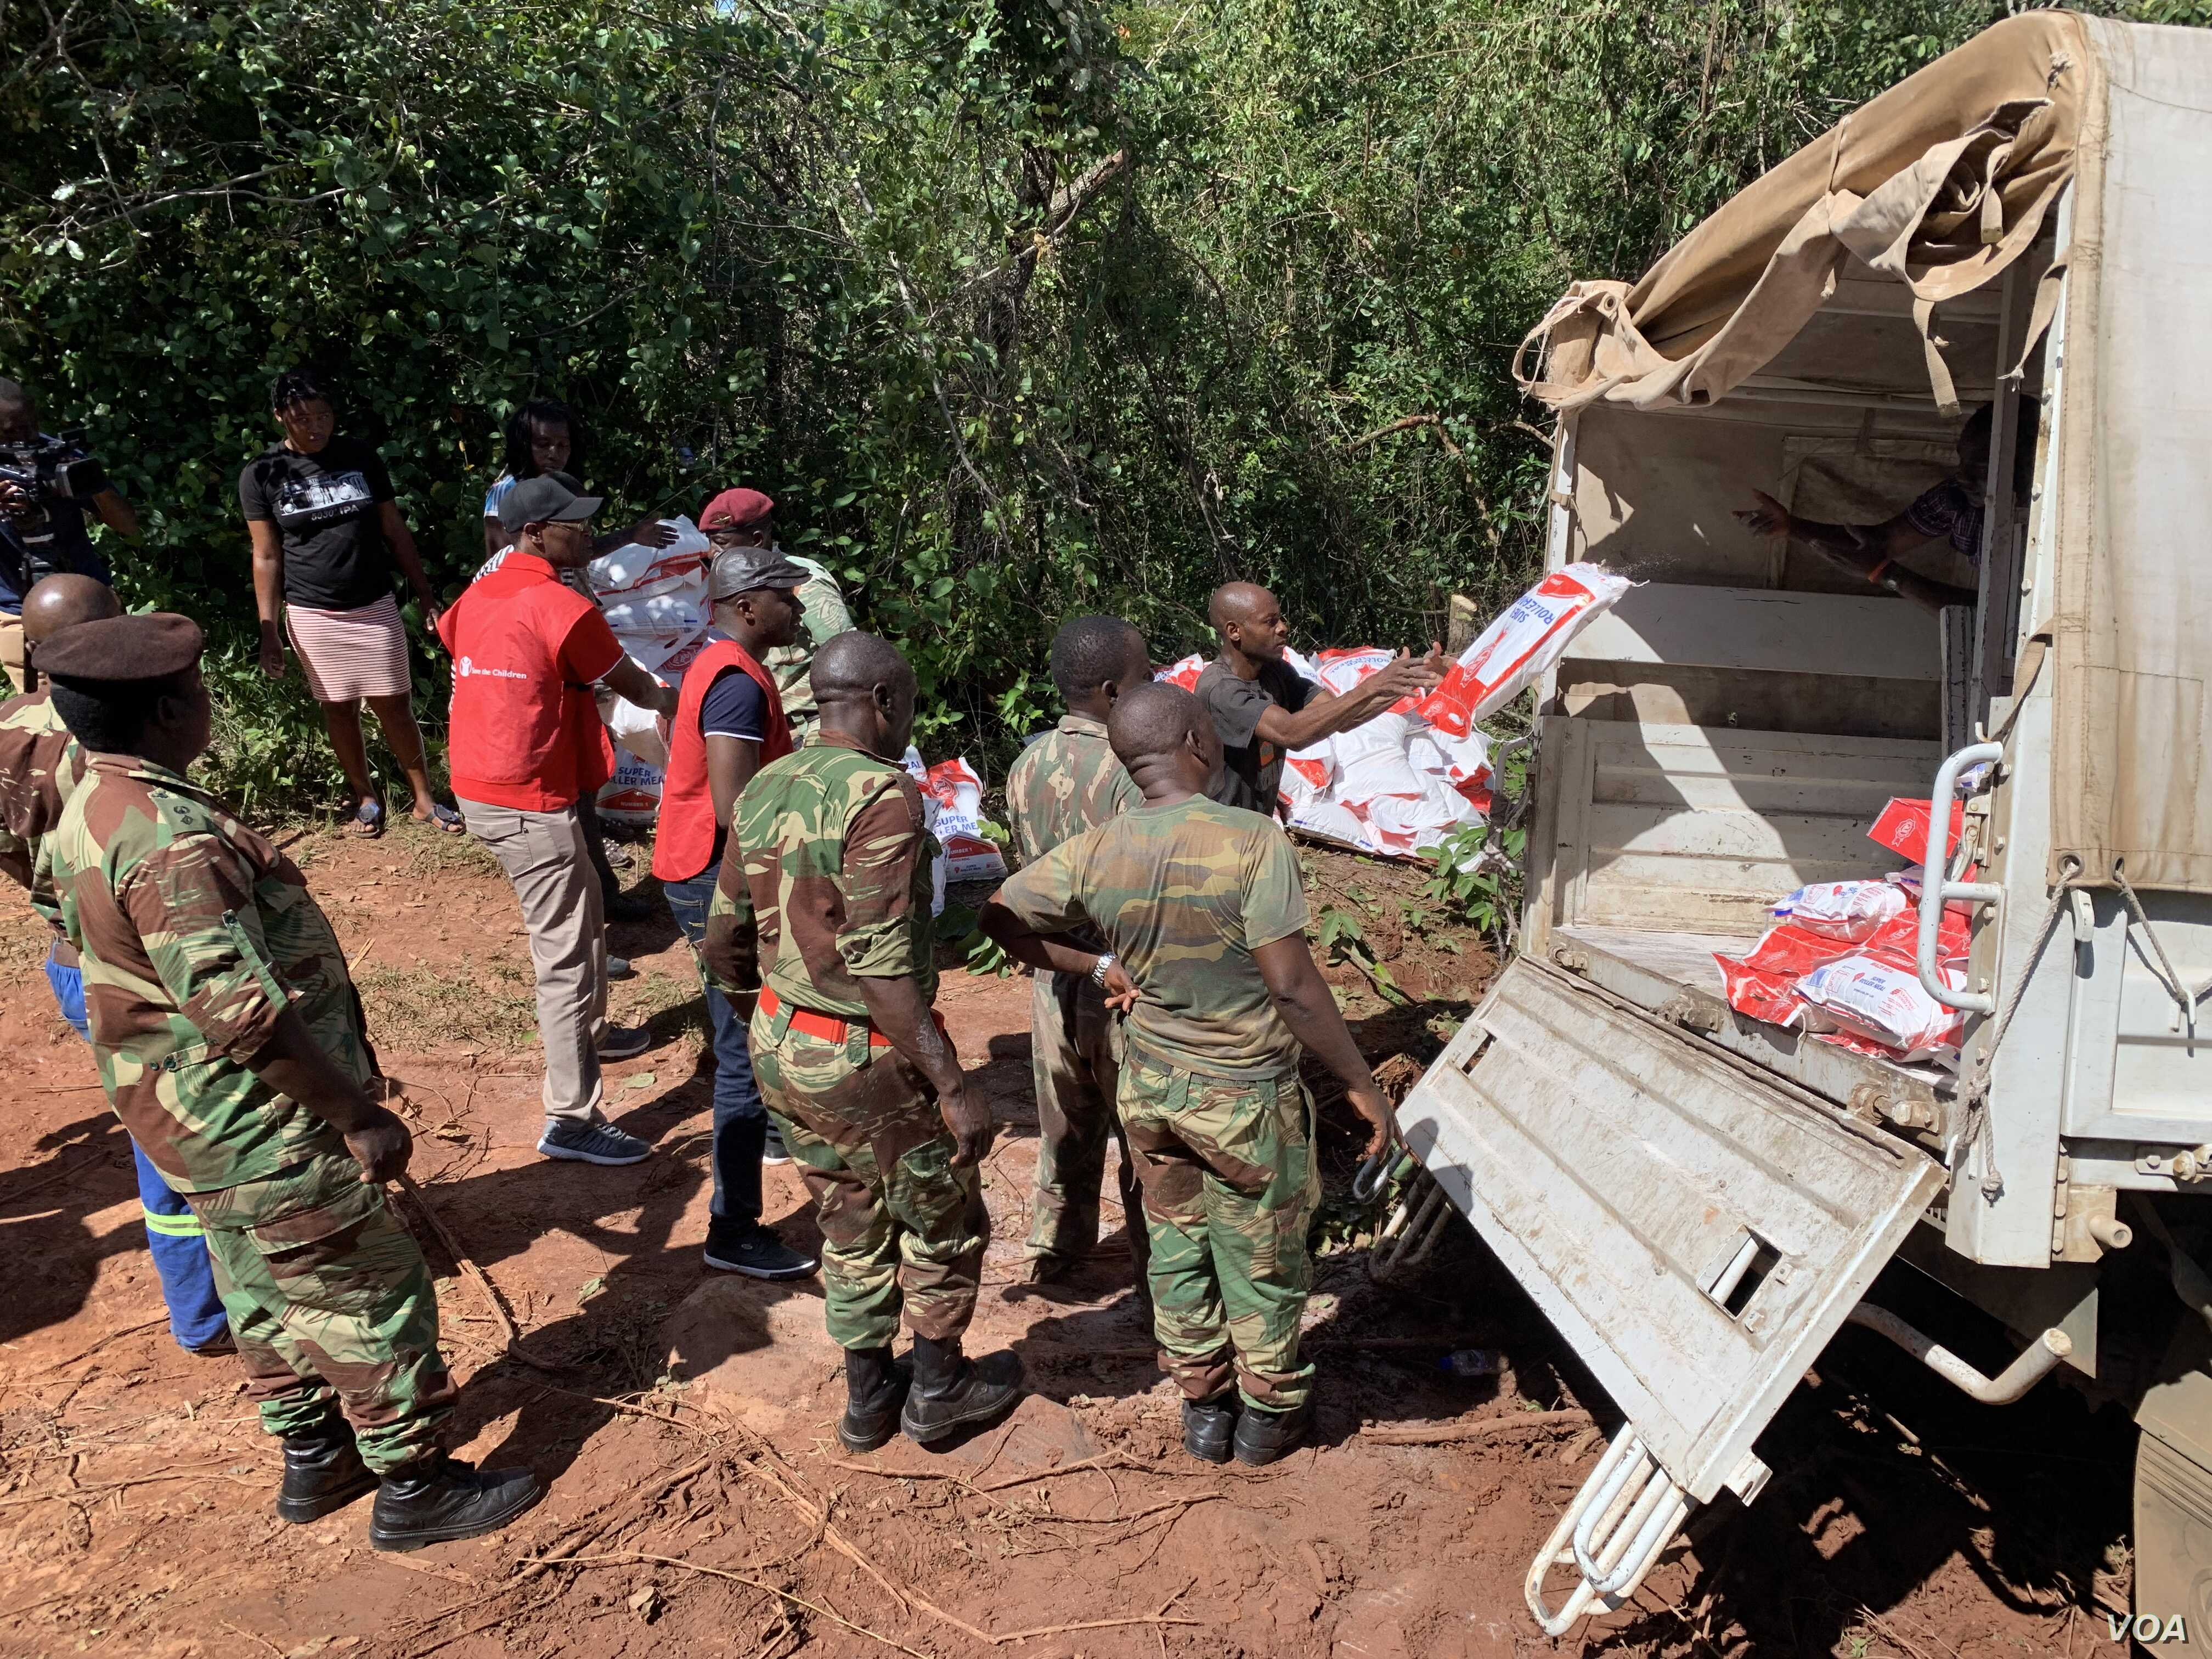 Official Death Toll from Cyclone Idai in Zimbabwe Tops 180